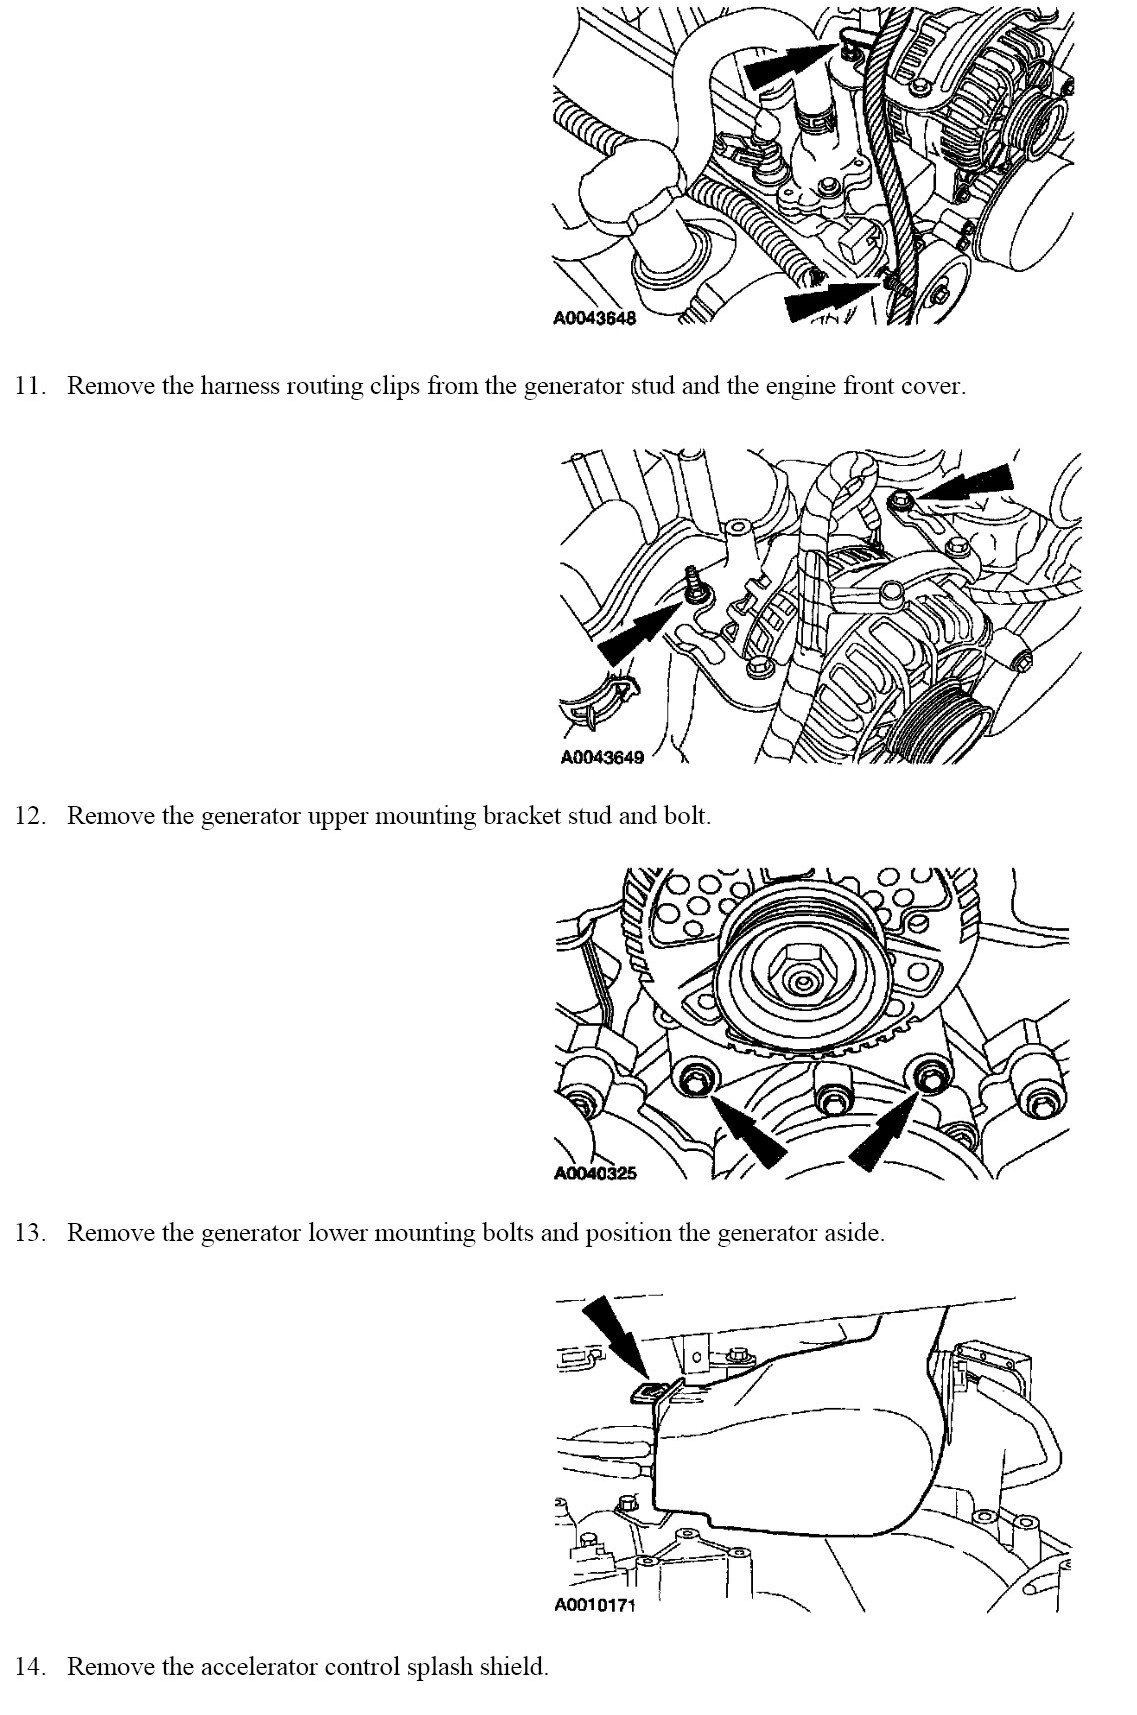 Ford Mustang Wiring Diagram Likewise 2002 Ford Expedition 4 6 Spark